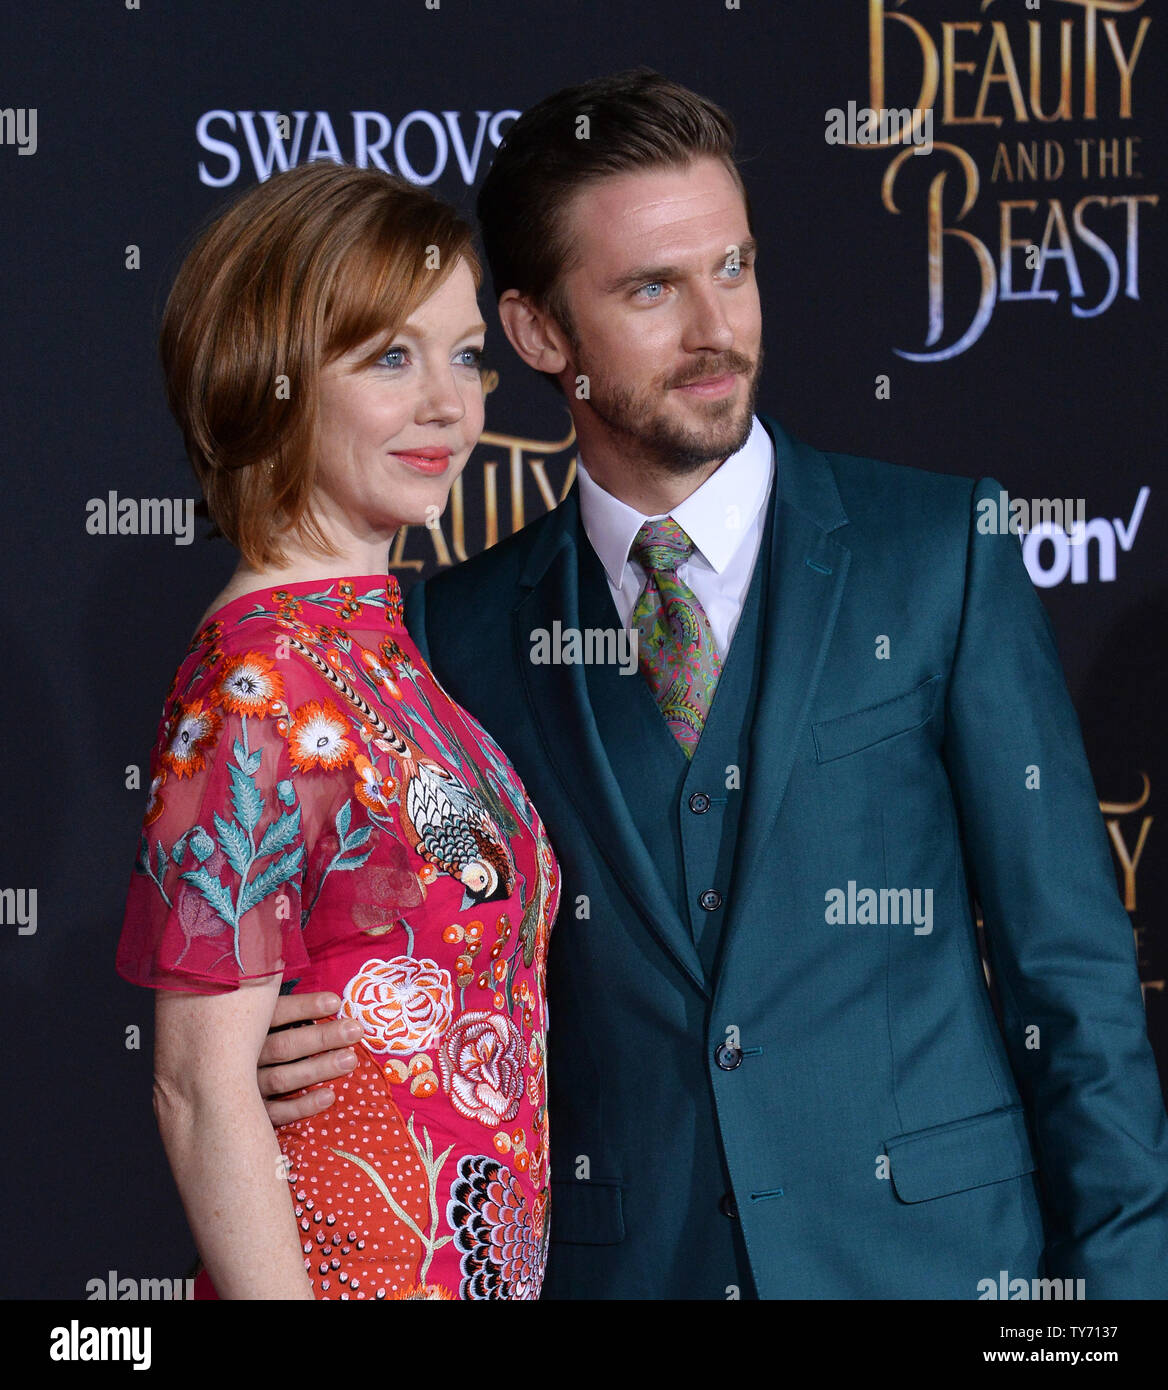 Cast member Dan Stevens and his wife Susie Hariet attend the